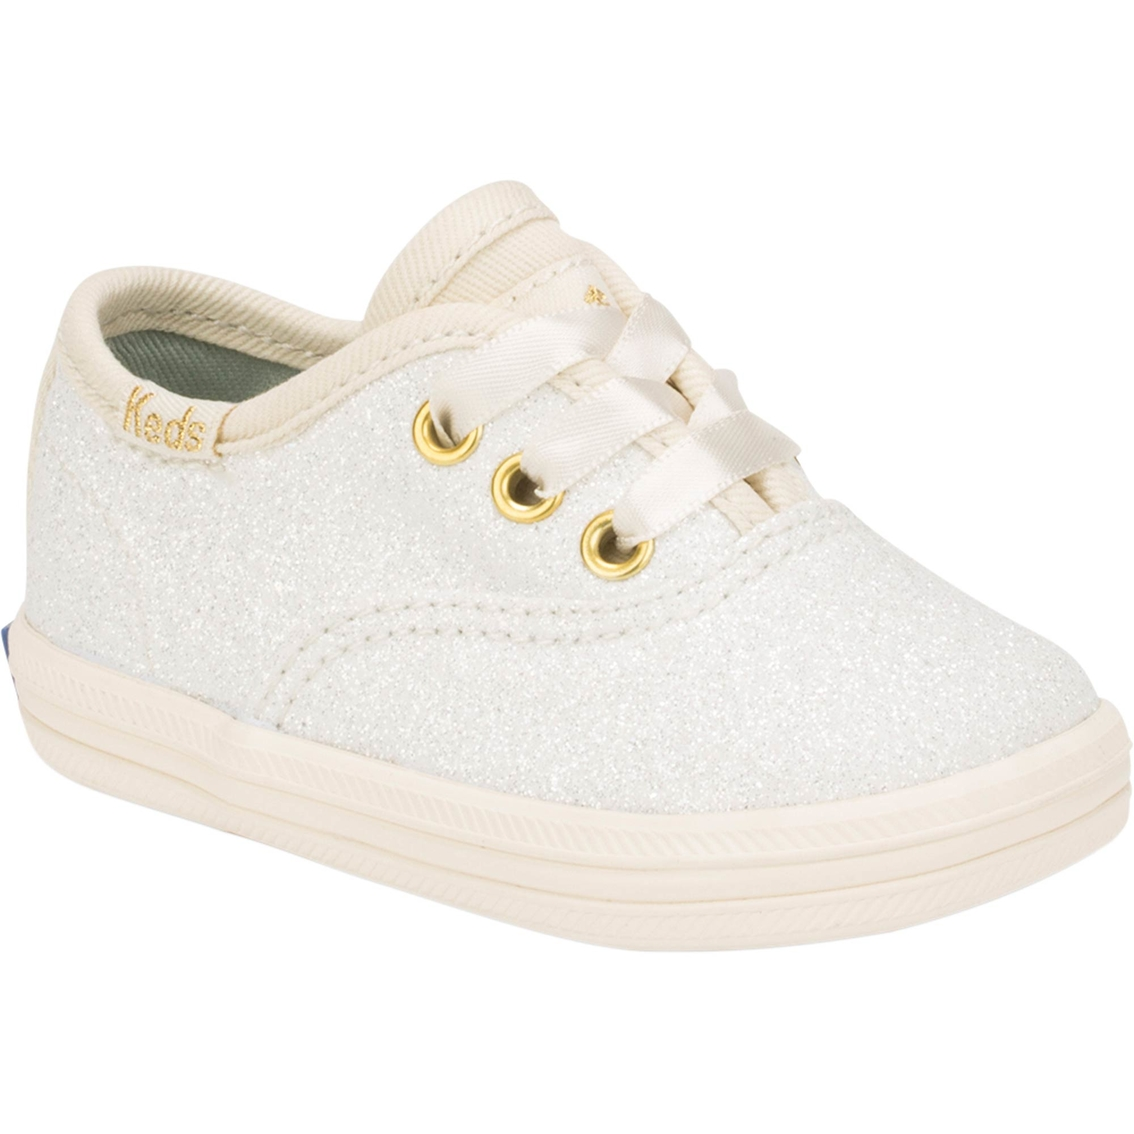 e3b8319a139 Keds X Kate Spade Infant Girls Champion Glitter Crib Sneakers ...